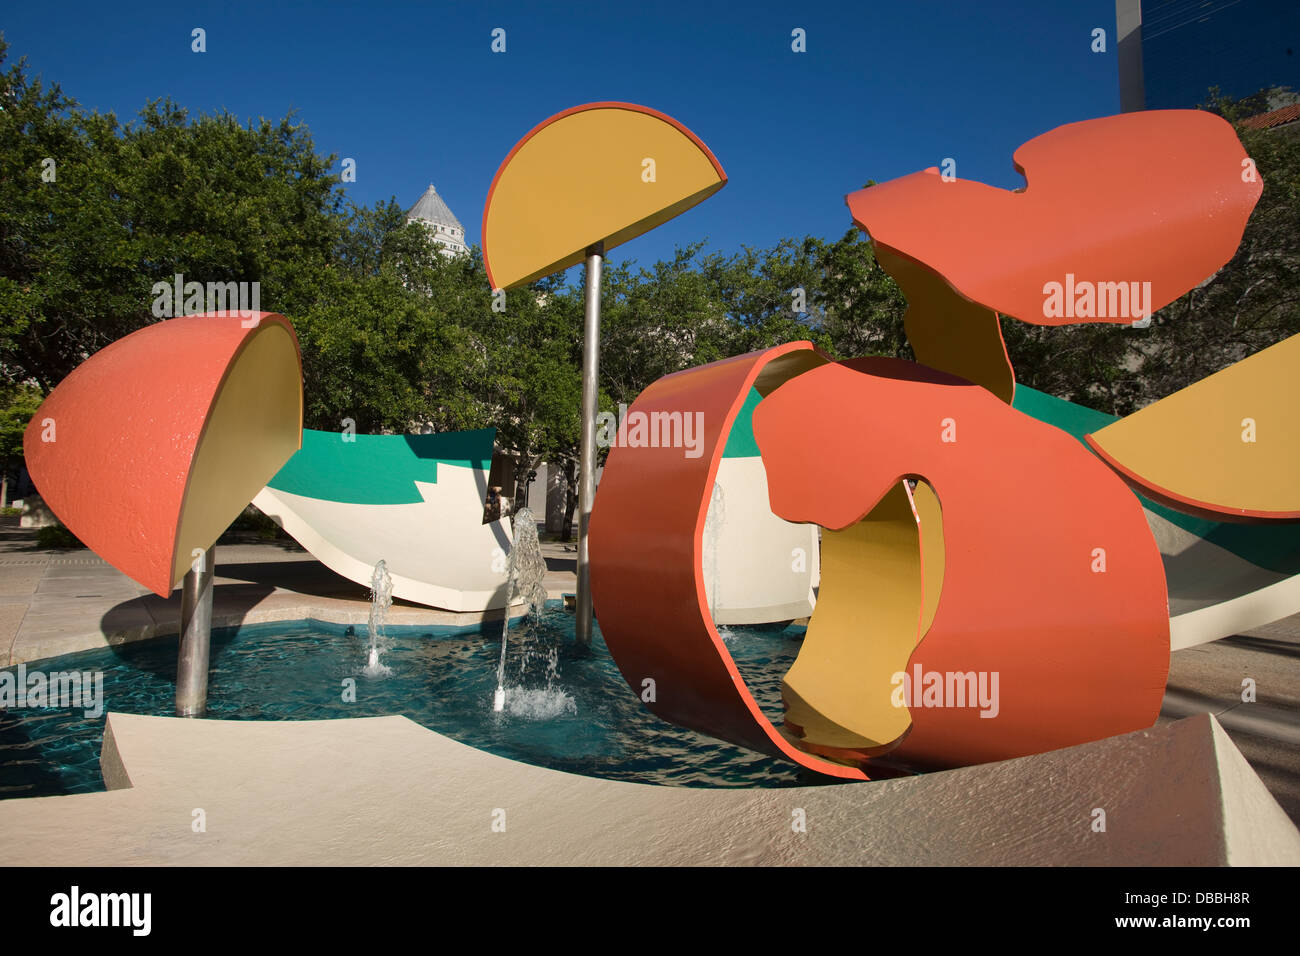 DROPPED BOWL WITH SCATTERED ORANGE SLICES AND PEELS FOUNTAIN METRO DADE PARK MIAMI FLORIDA USA - Stock Image